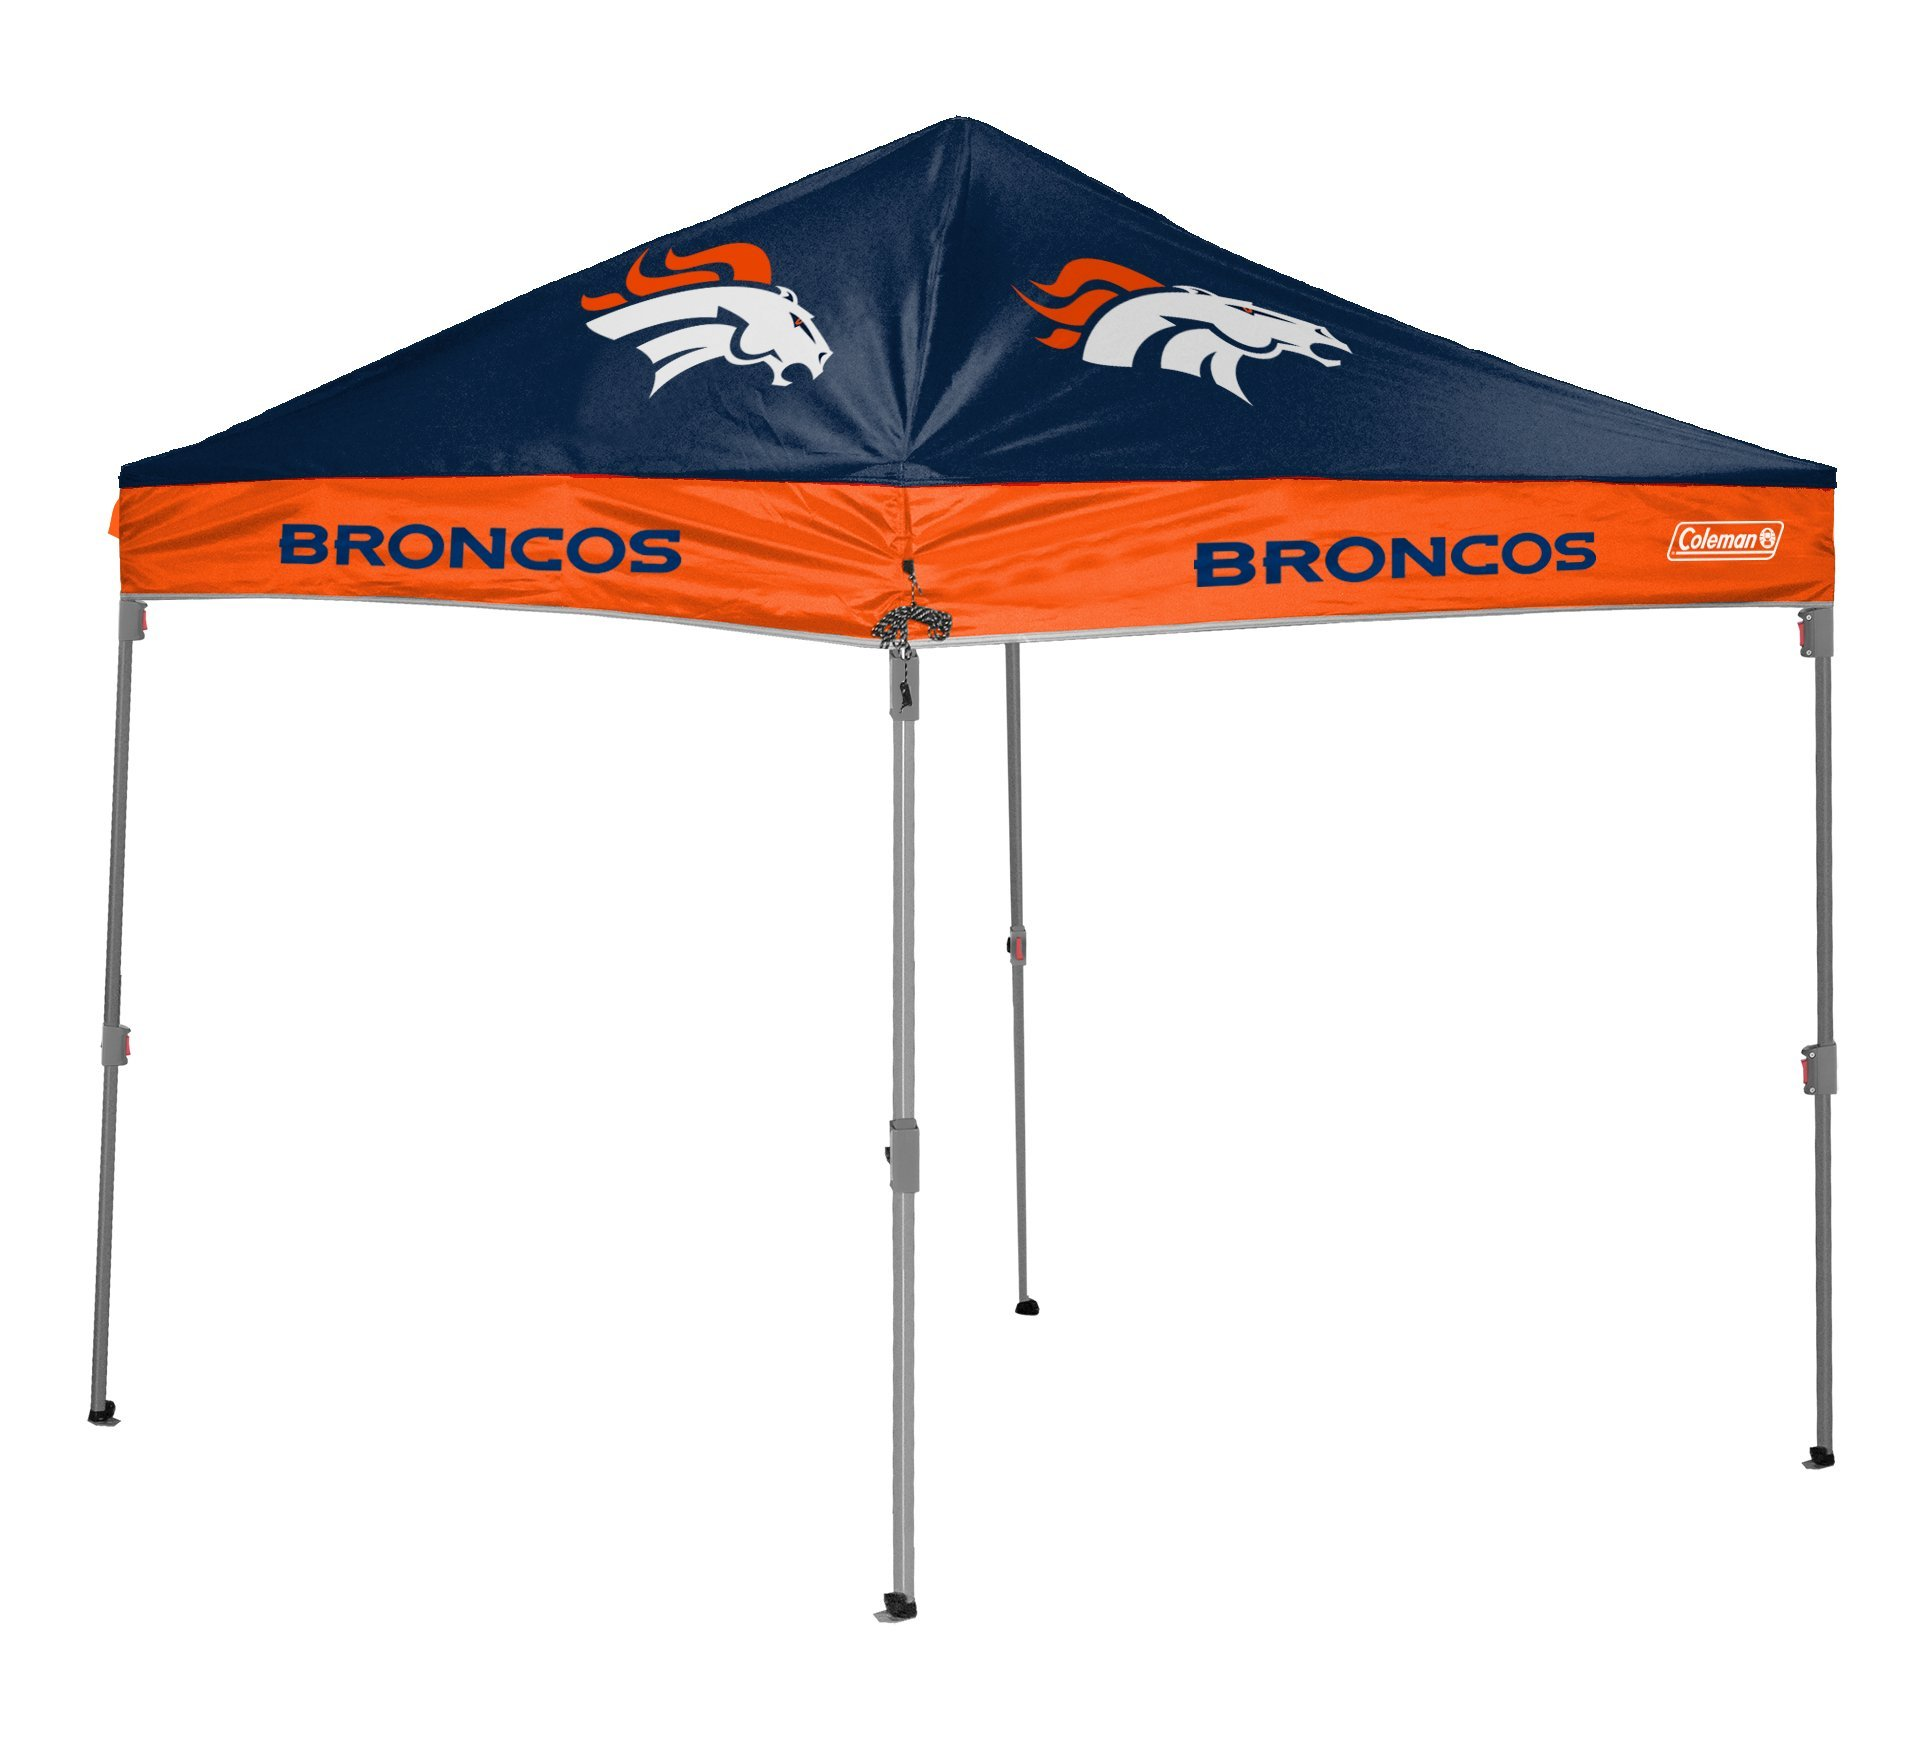 NFL Instant Pop-Up Canopy Tent with Carrying Case, 10x10